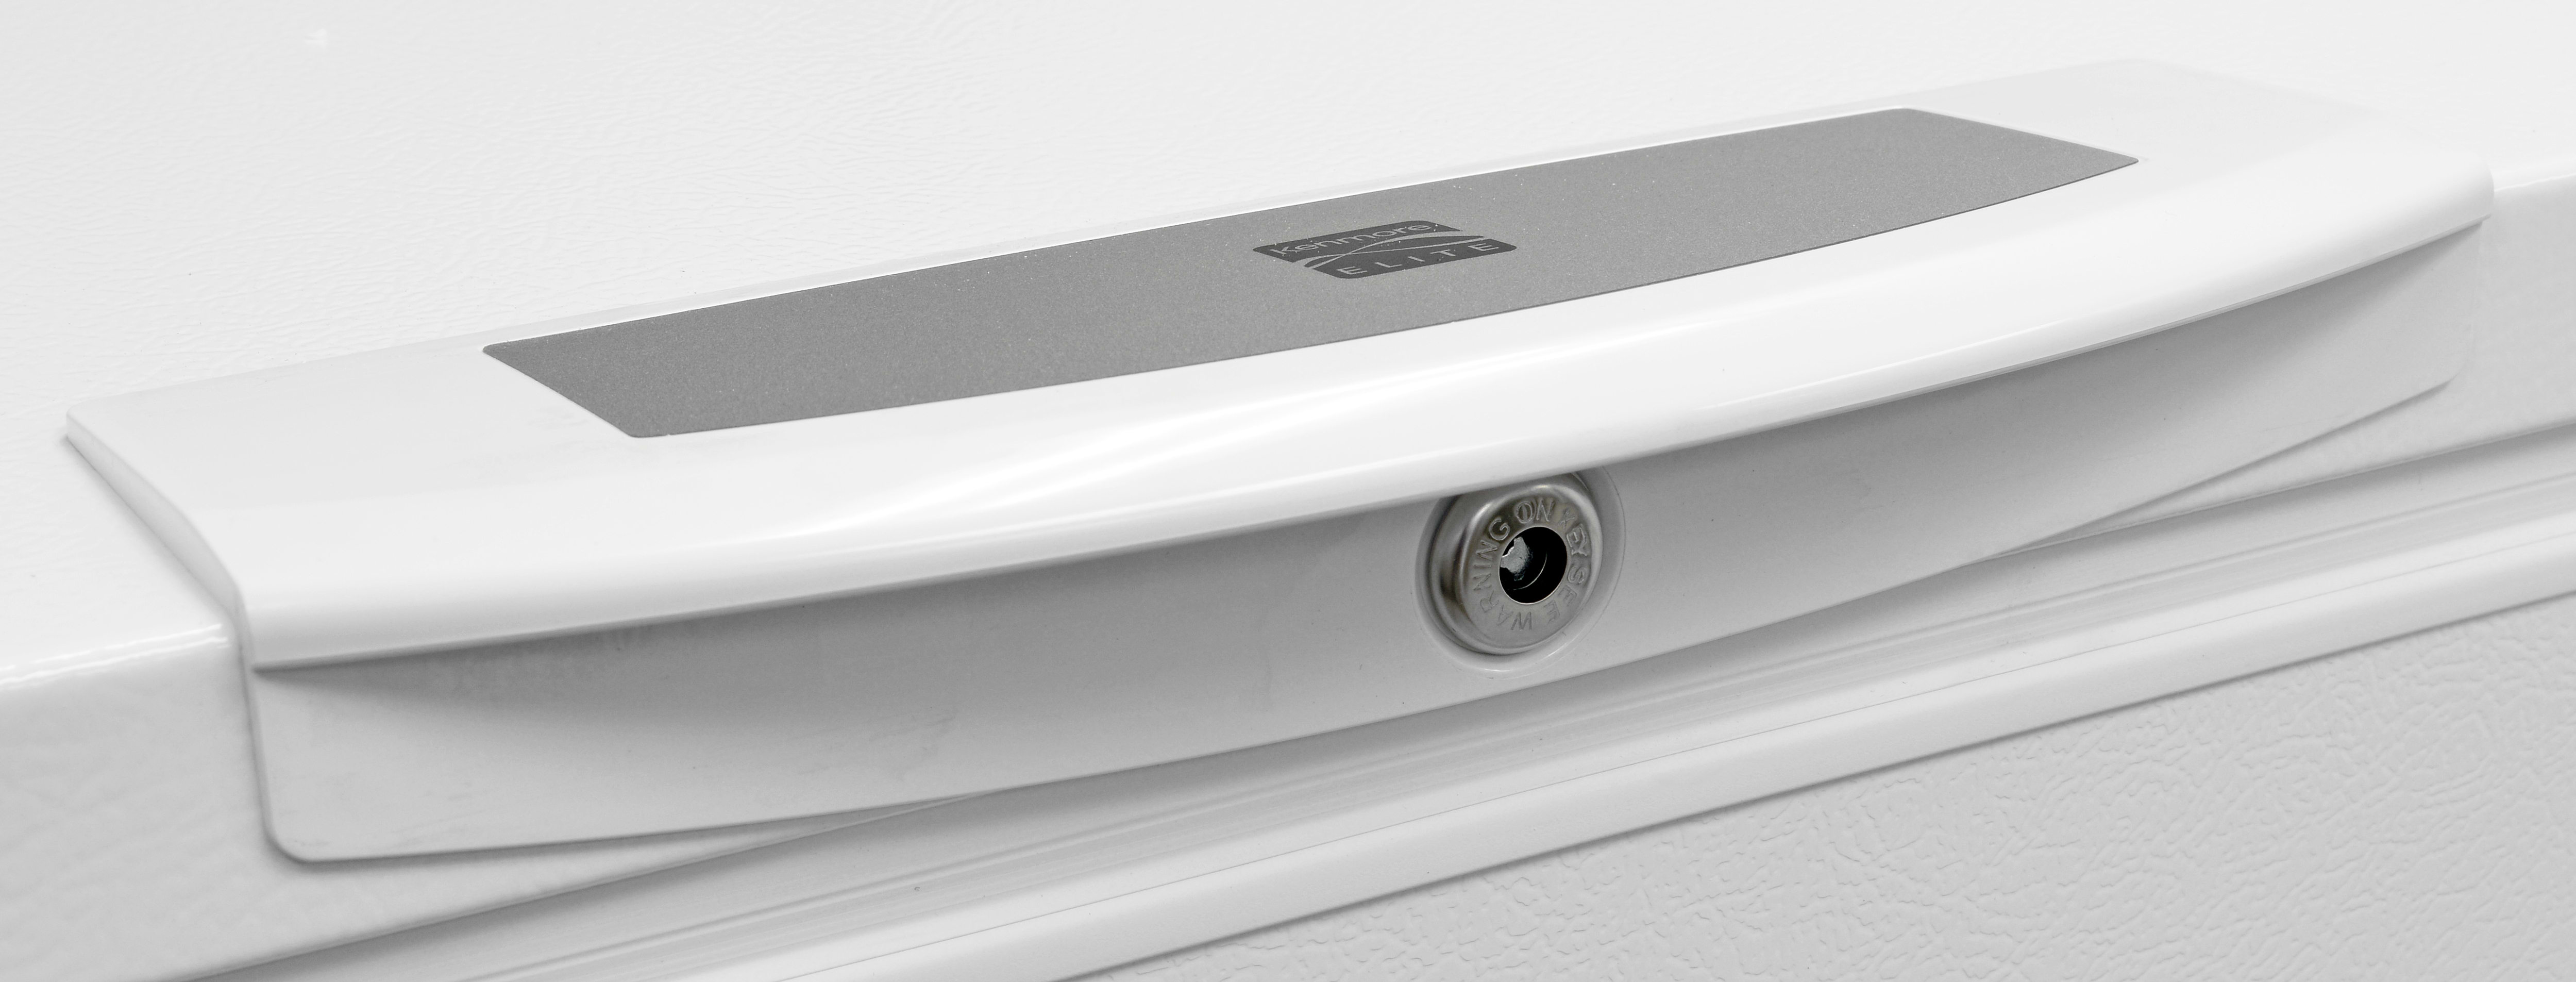 A traditional door lock helps keep the Kenmore Elite 17202's heavy lid in place.